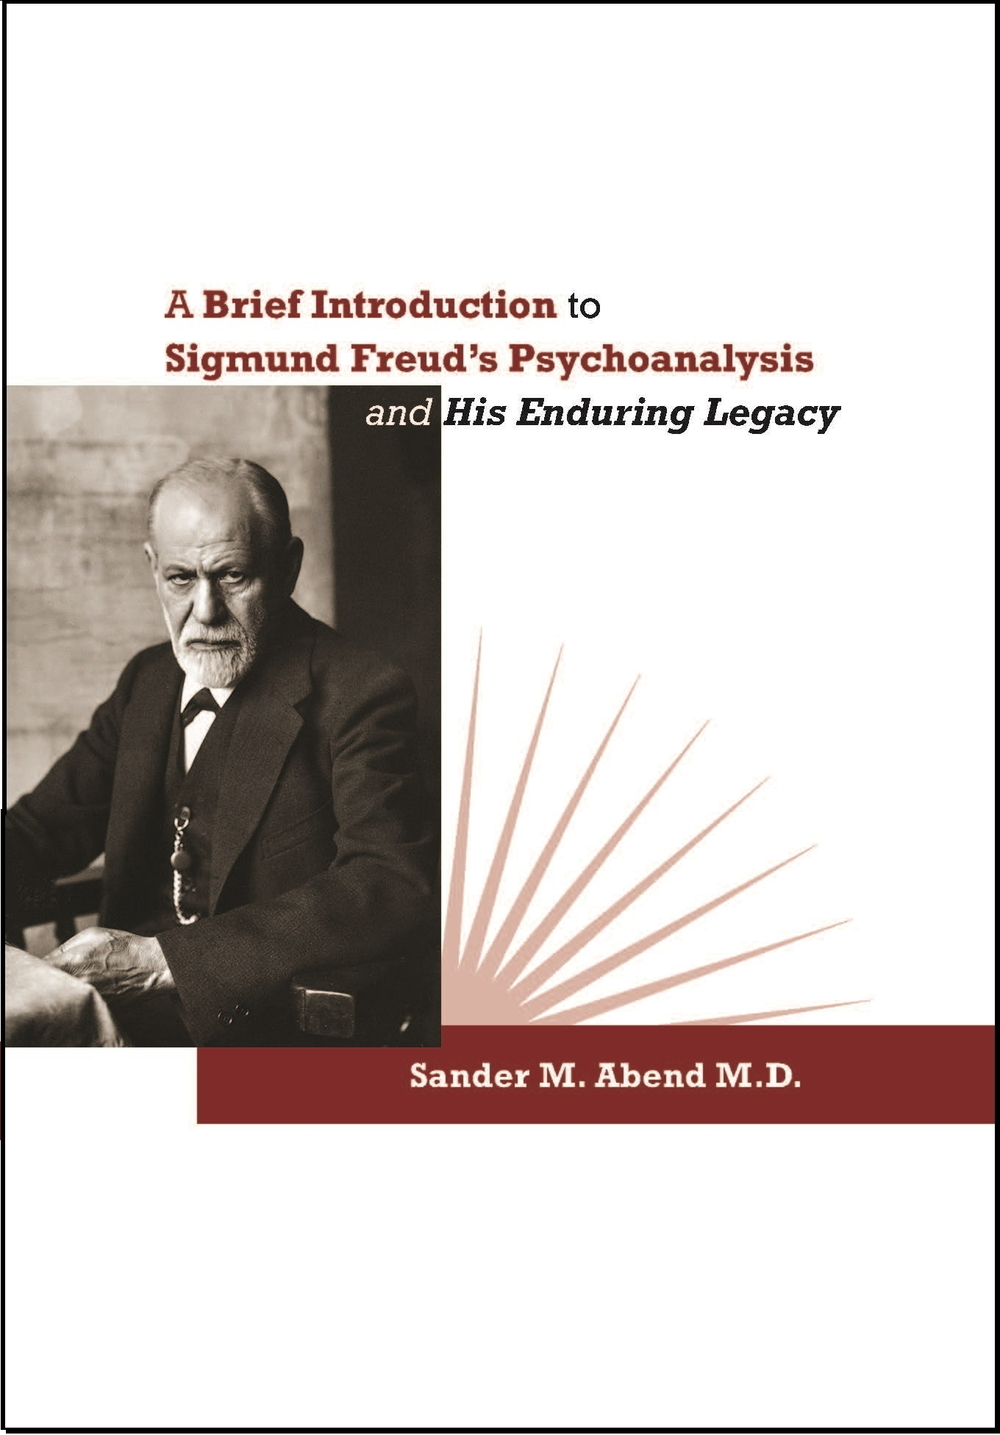 an analysis of sigmund freud contribution called psychoanalysis Sigmund freud was a late 19th and early 20th century neurologist he is widely acknowledged as the father of modern psychology and the primary developer of the process of psychoanalysis early life sigmund freud was born in freiberg, moravia in 1856, the oldest of eight children his family moved to vienna when freud was four.